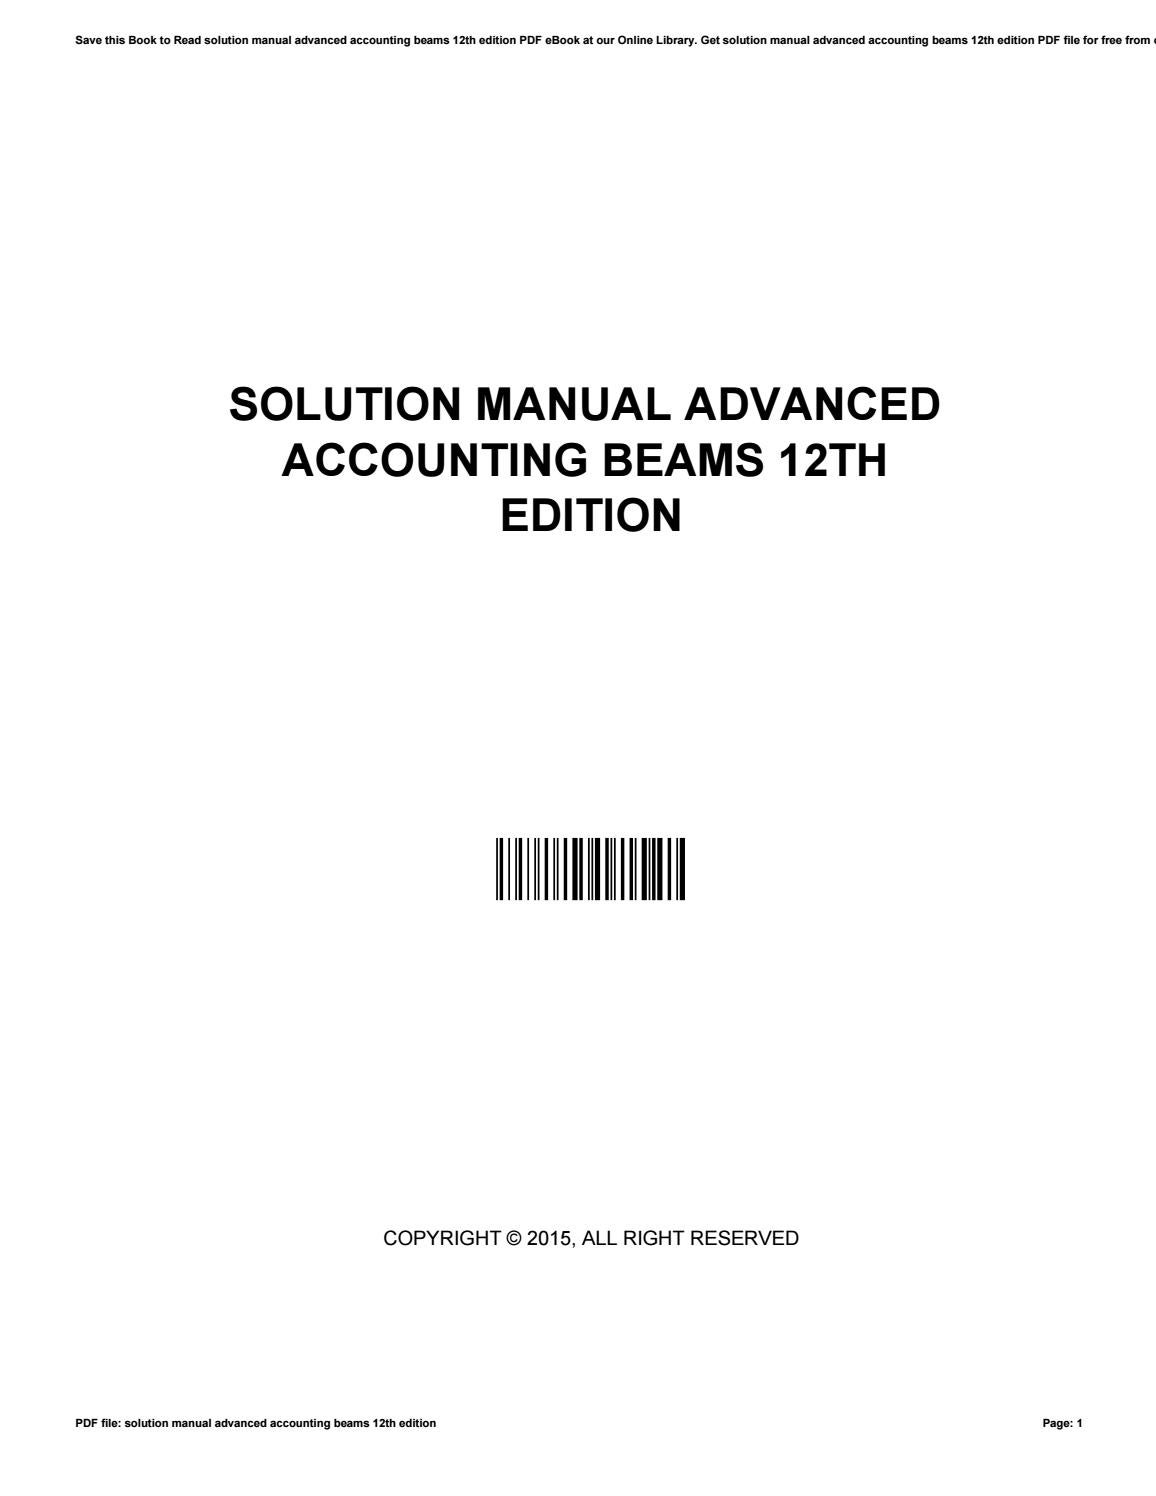 Solution manual advanced accounting beams 12th edition by AnneTaylor2693 -  issuu